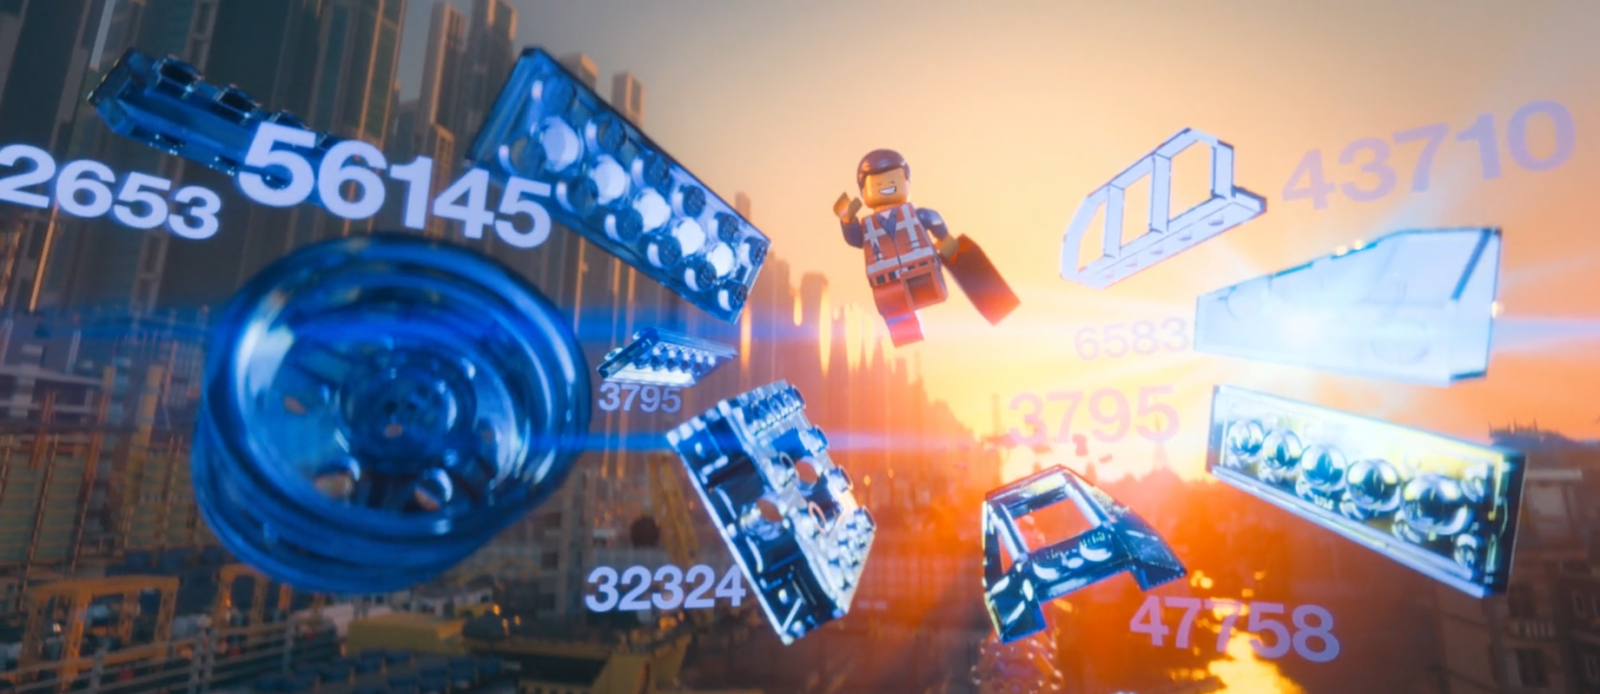 Emmet in the LEGO Movie becoming a master builder